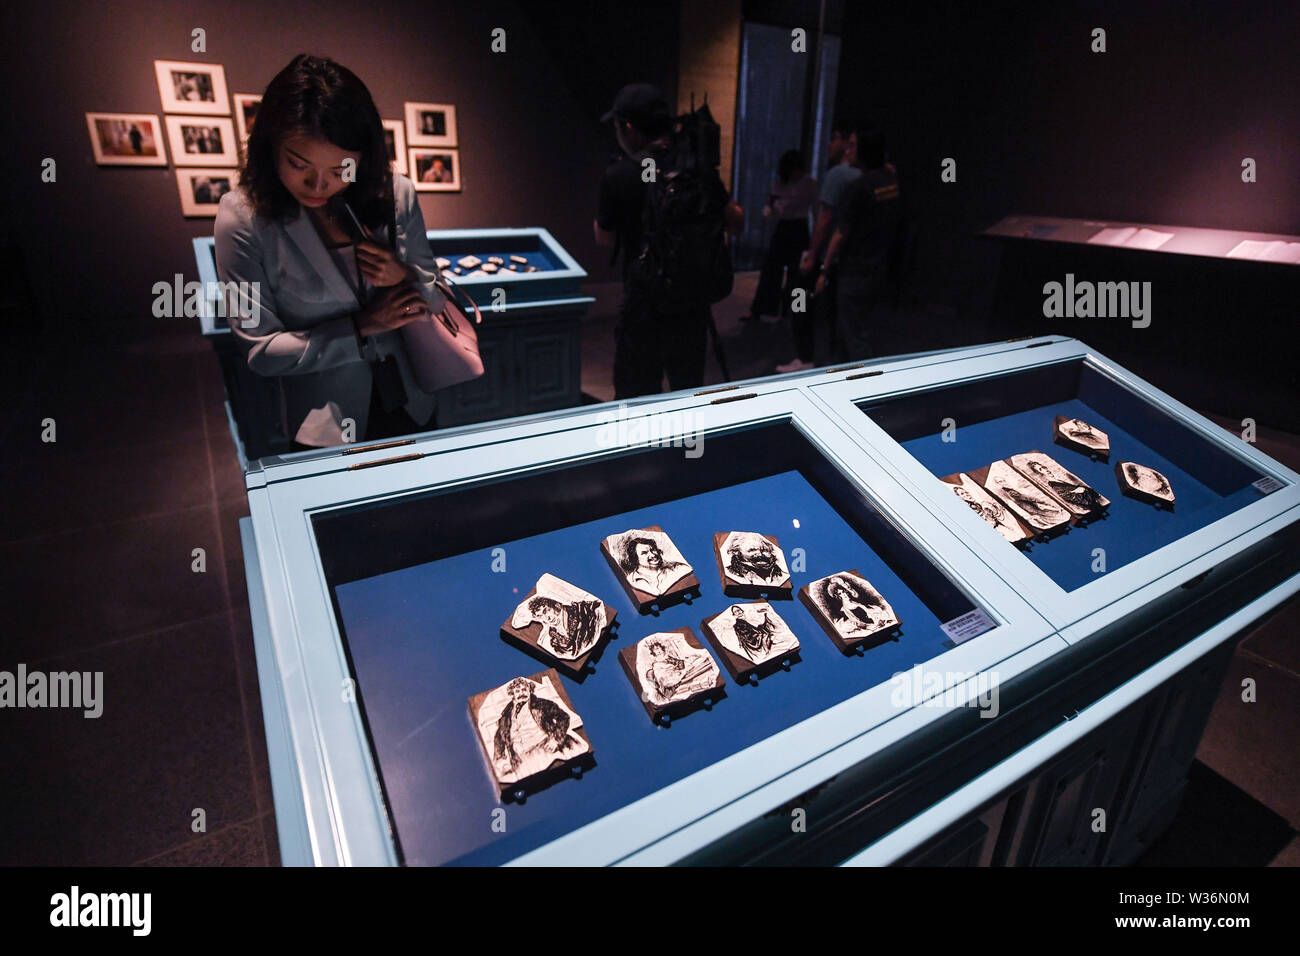 Wuzhen, China's Zhejiang Province. 13th July, 2019. A visitor views exhibits during an exhibition that commemorates well-known French writer Honore de Balzac held at Muxin Art Museum in the Wuzhen scenic area of Tongxiang, east China's Zhejiang Province, July 13, 2019. More than 100 exhibits are on display during the exhibition that runs from July 13 to Oct. 31. Credit: Xu Yu/Xinhua/Alamy Live News - Stock Image